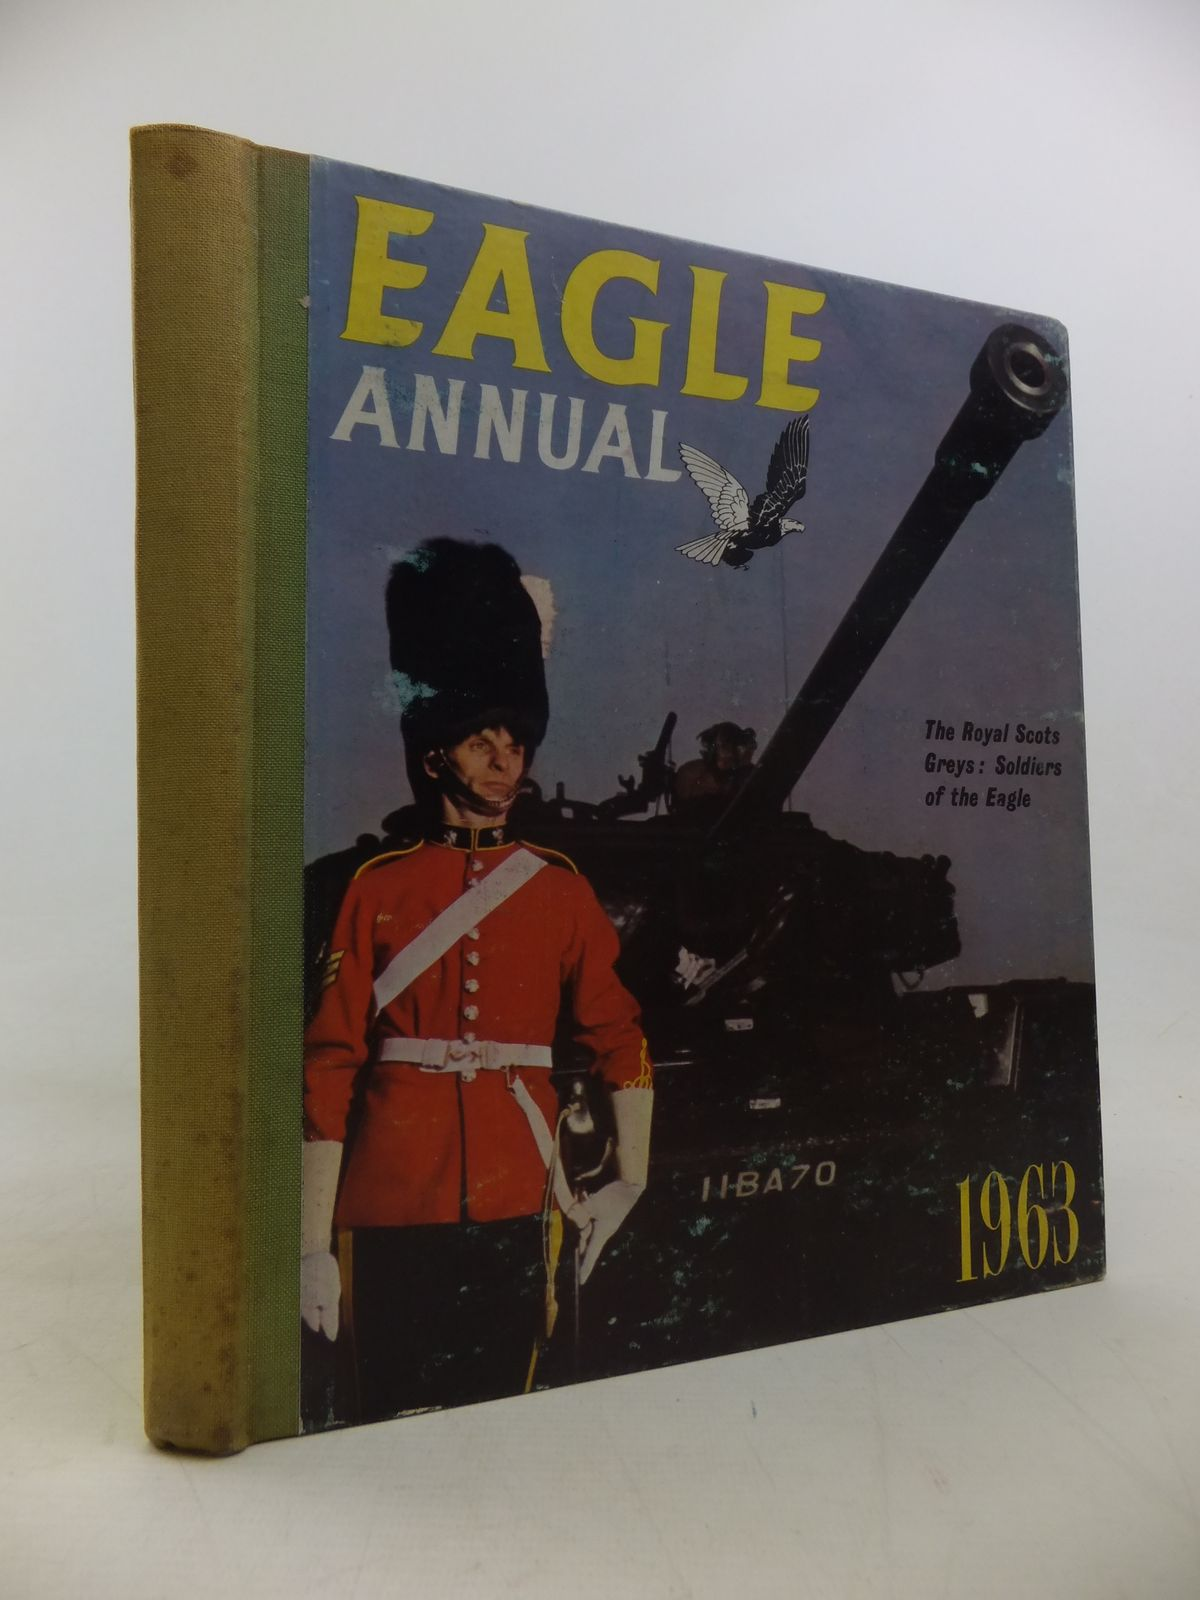 Photo of EAGLE ANNUAL 1963 written by Morris, Marcus published by Longacre Press Ltd. (STOCK CODE: 2117772)  for sale by Stella & Rose's Books